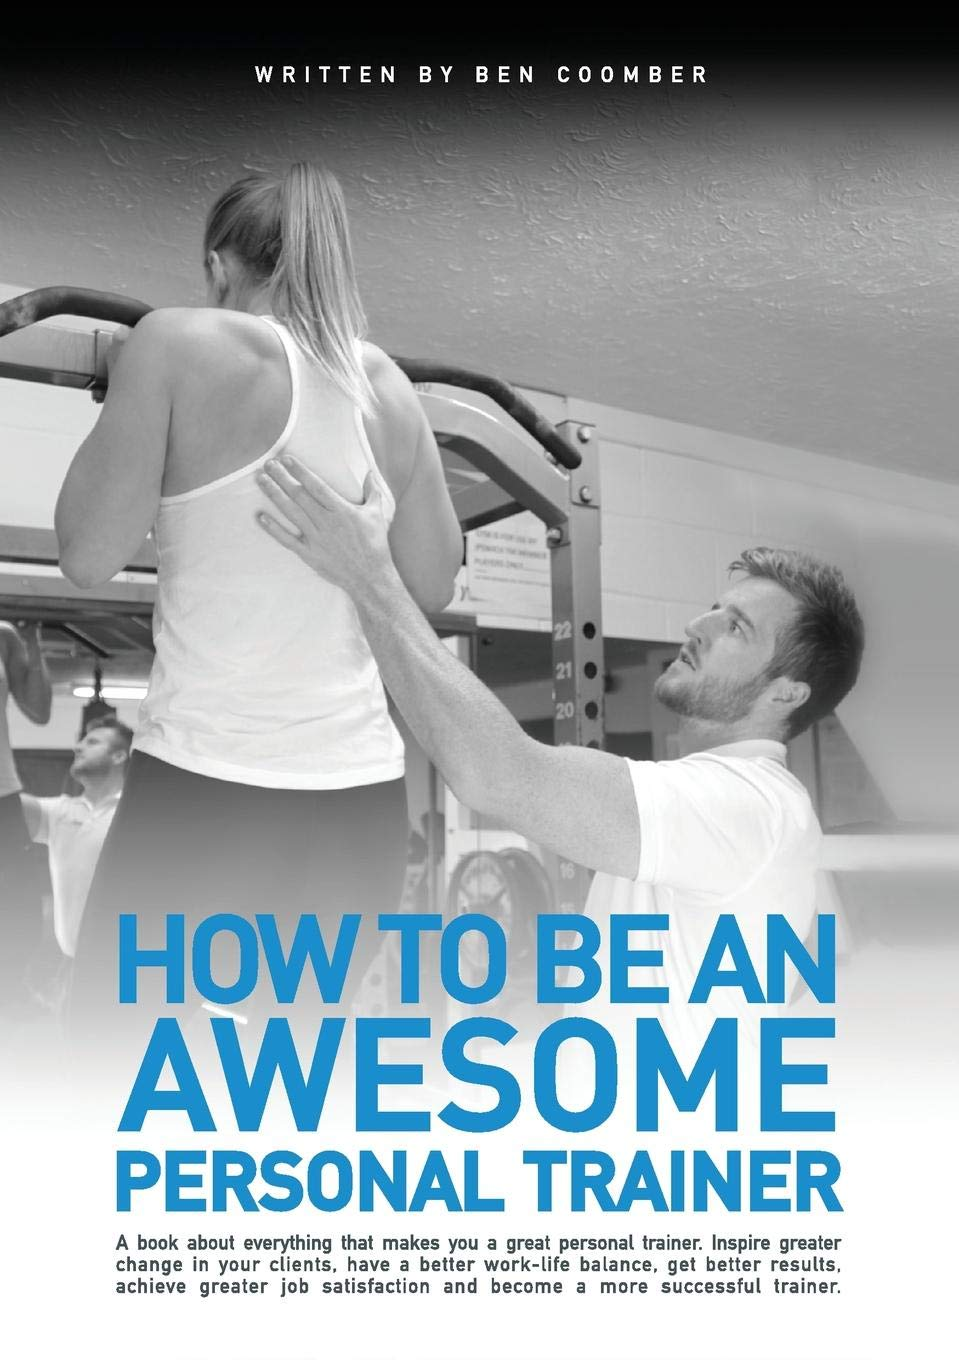 How To Be An Awesome Personal Trainer Amazon Ben Coomber